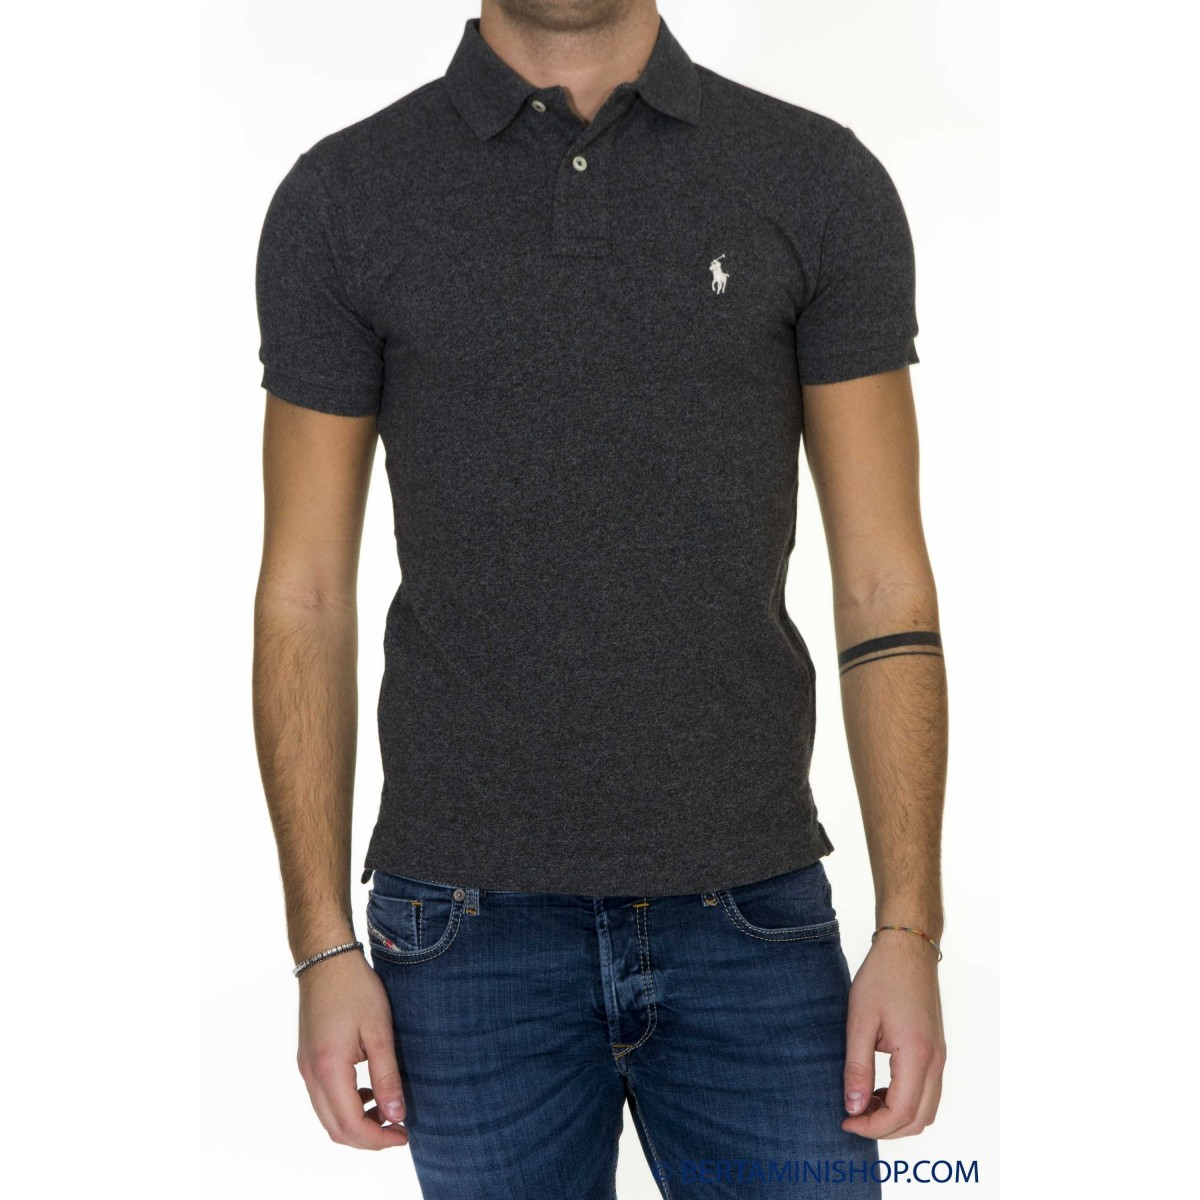 Polo Ralph Lauren Manner - A12KAA10C8312 Slim Fit A0Z02 - Antracite melange